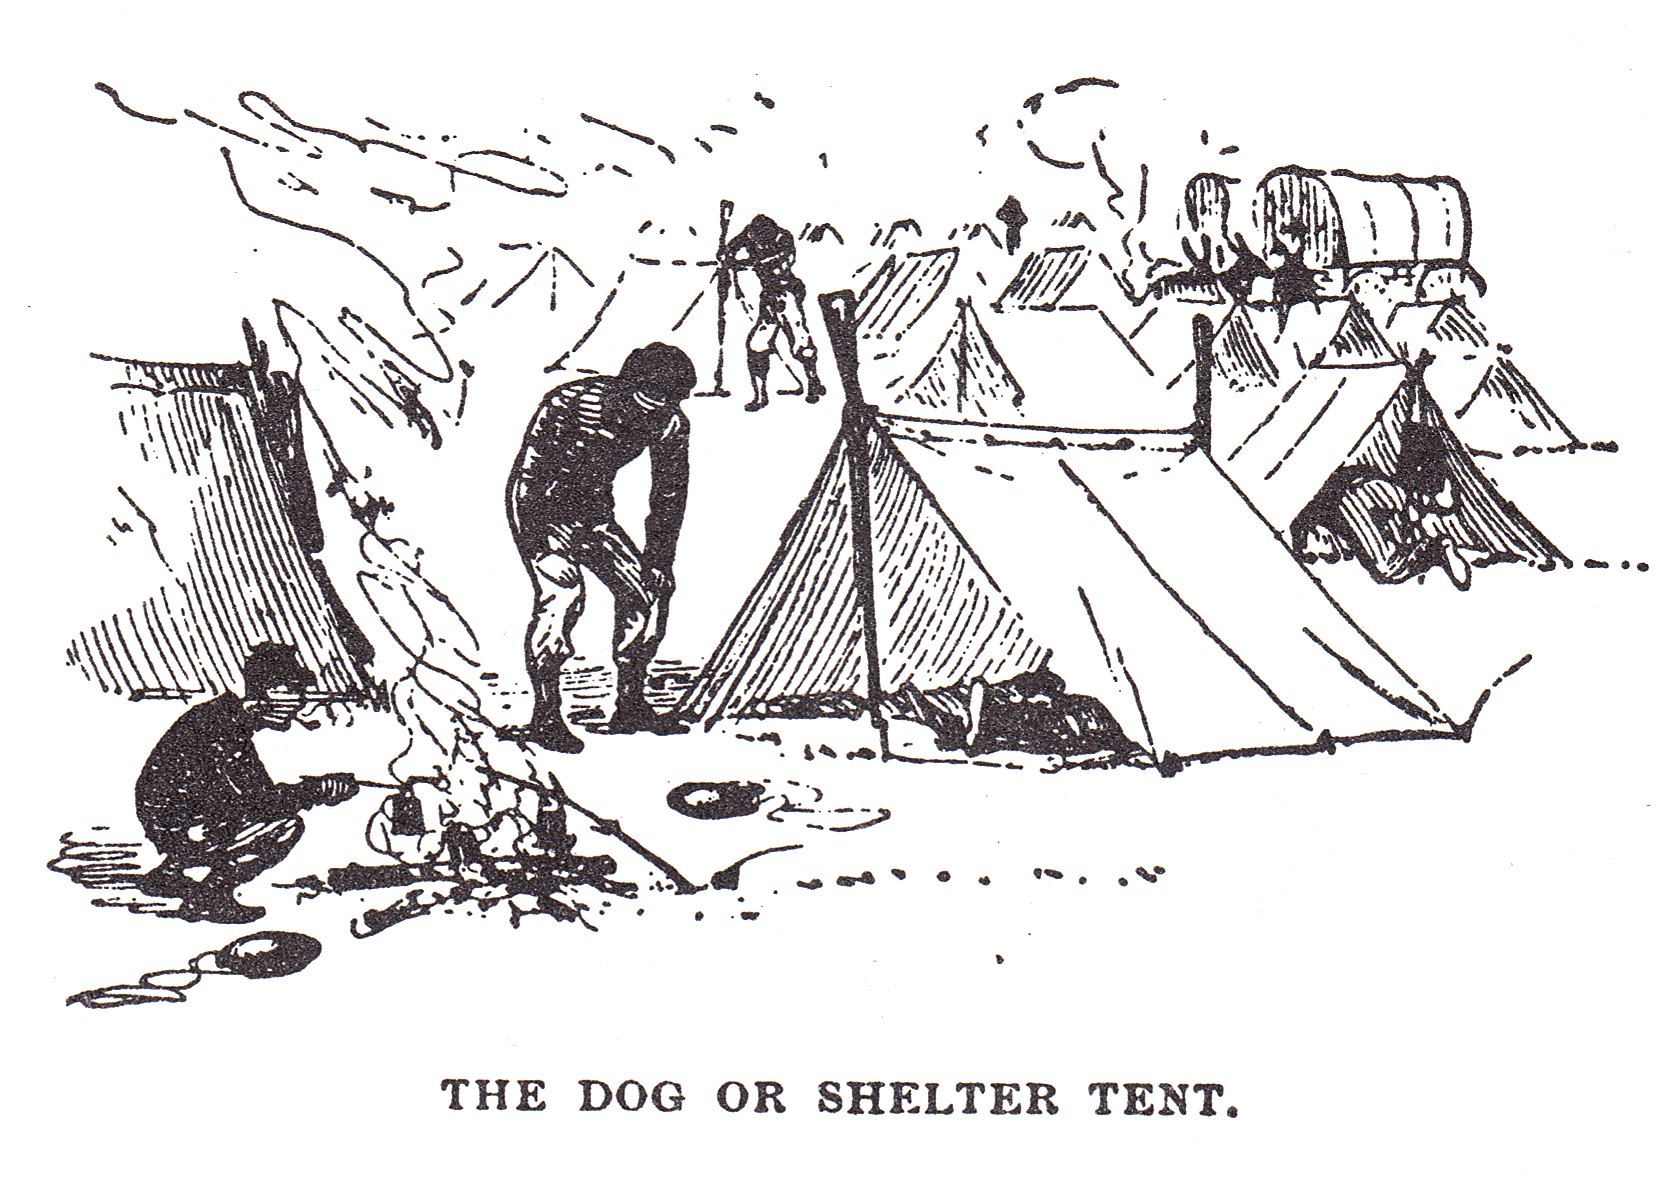 The Shelter Tent Was The Standard Issue Tent For Union